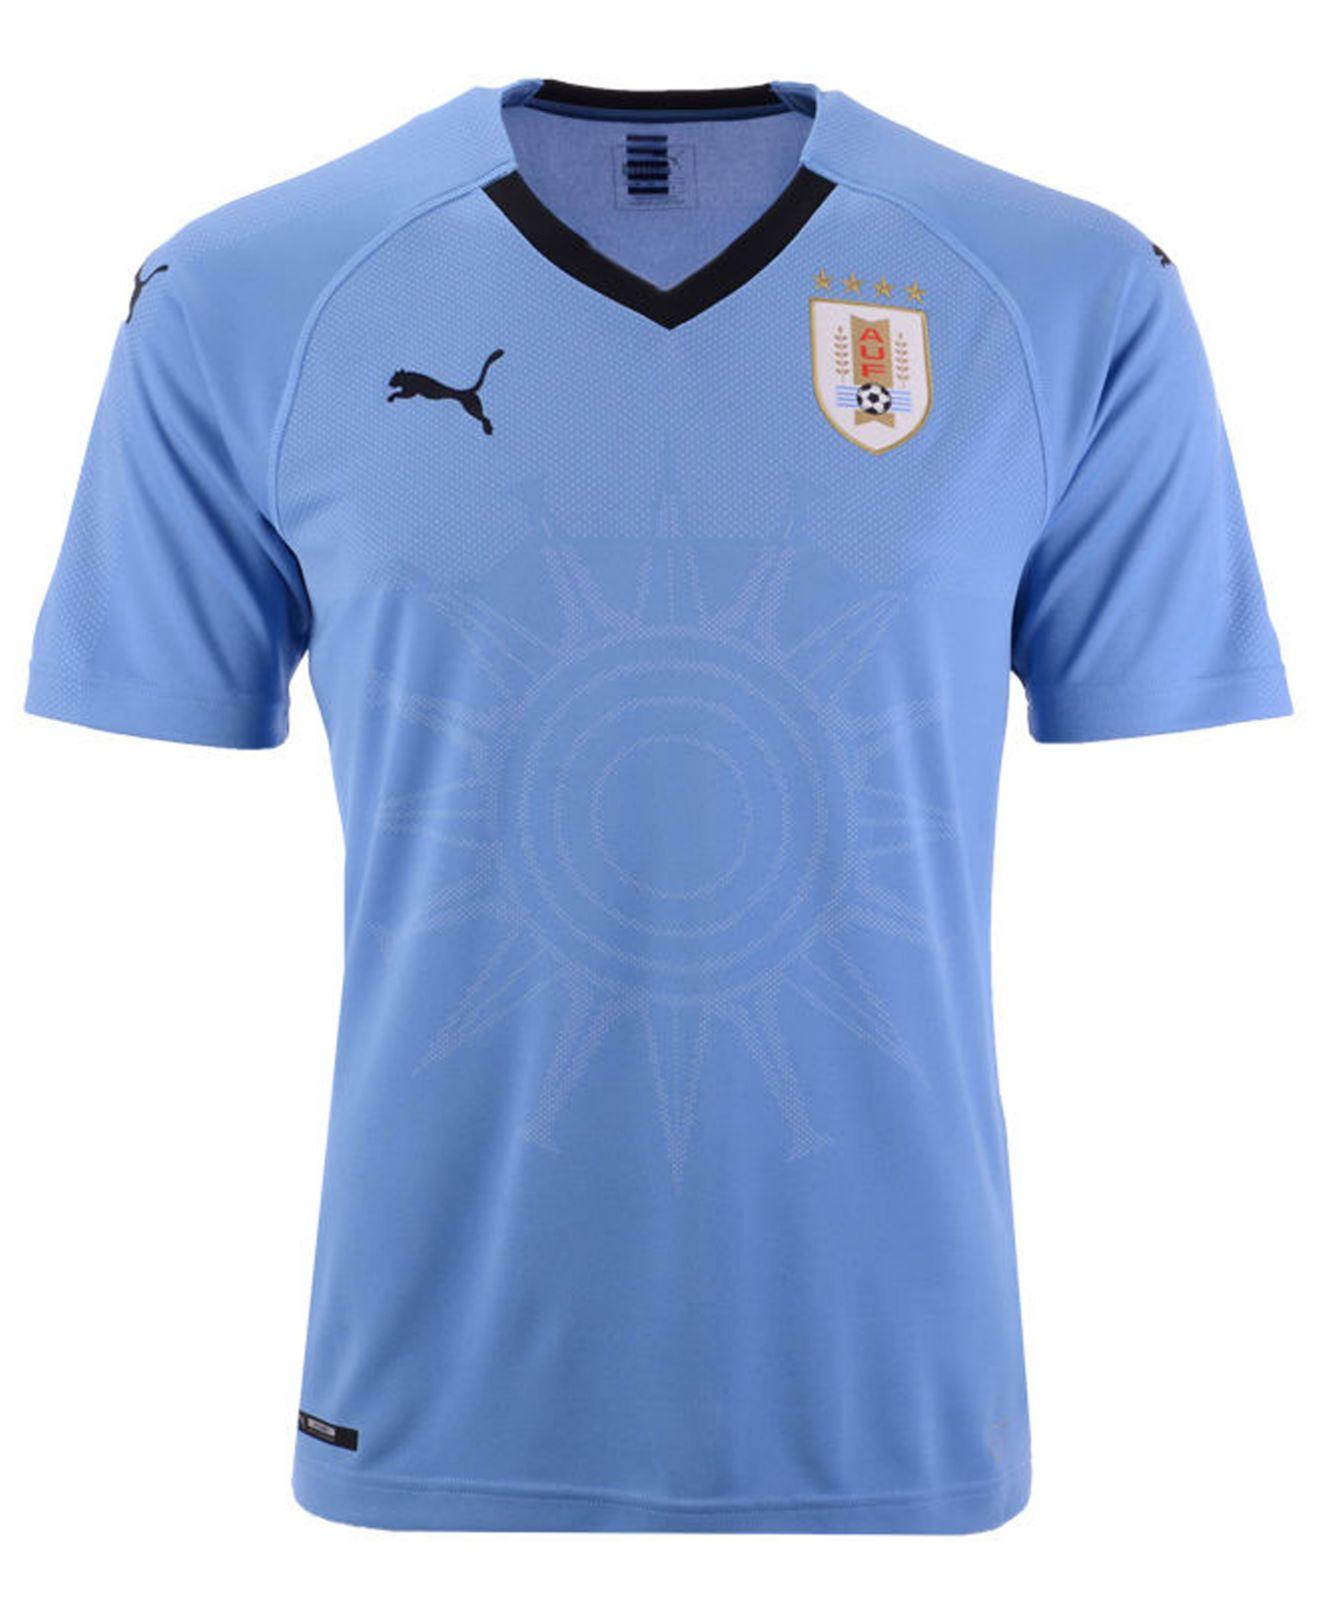 Lyst - Puma Uruguay Soccer National Team Home Jersey in Blue for Men e6b9a52e4